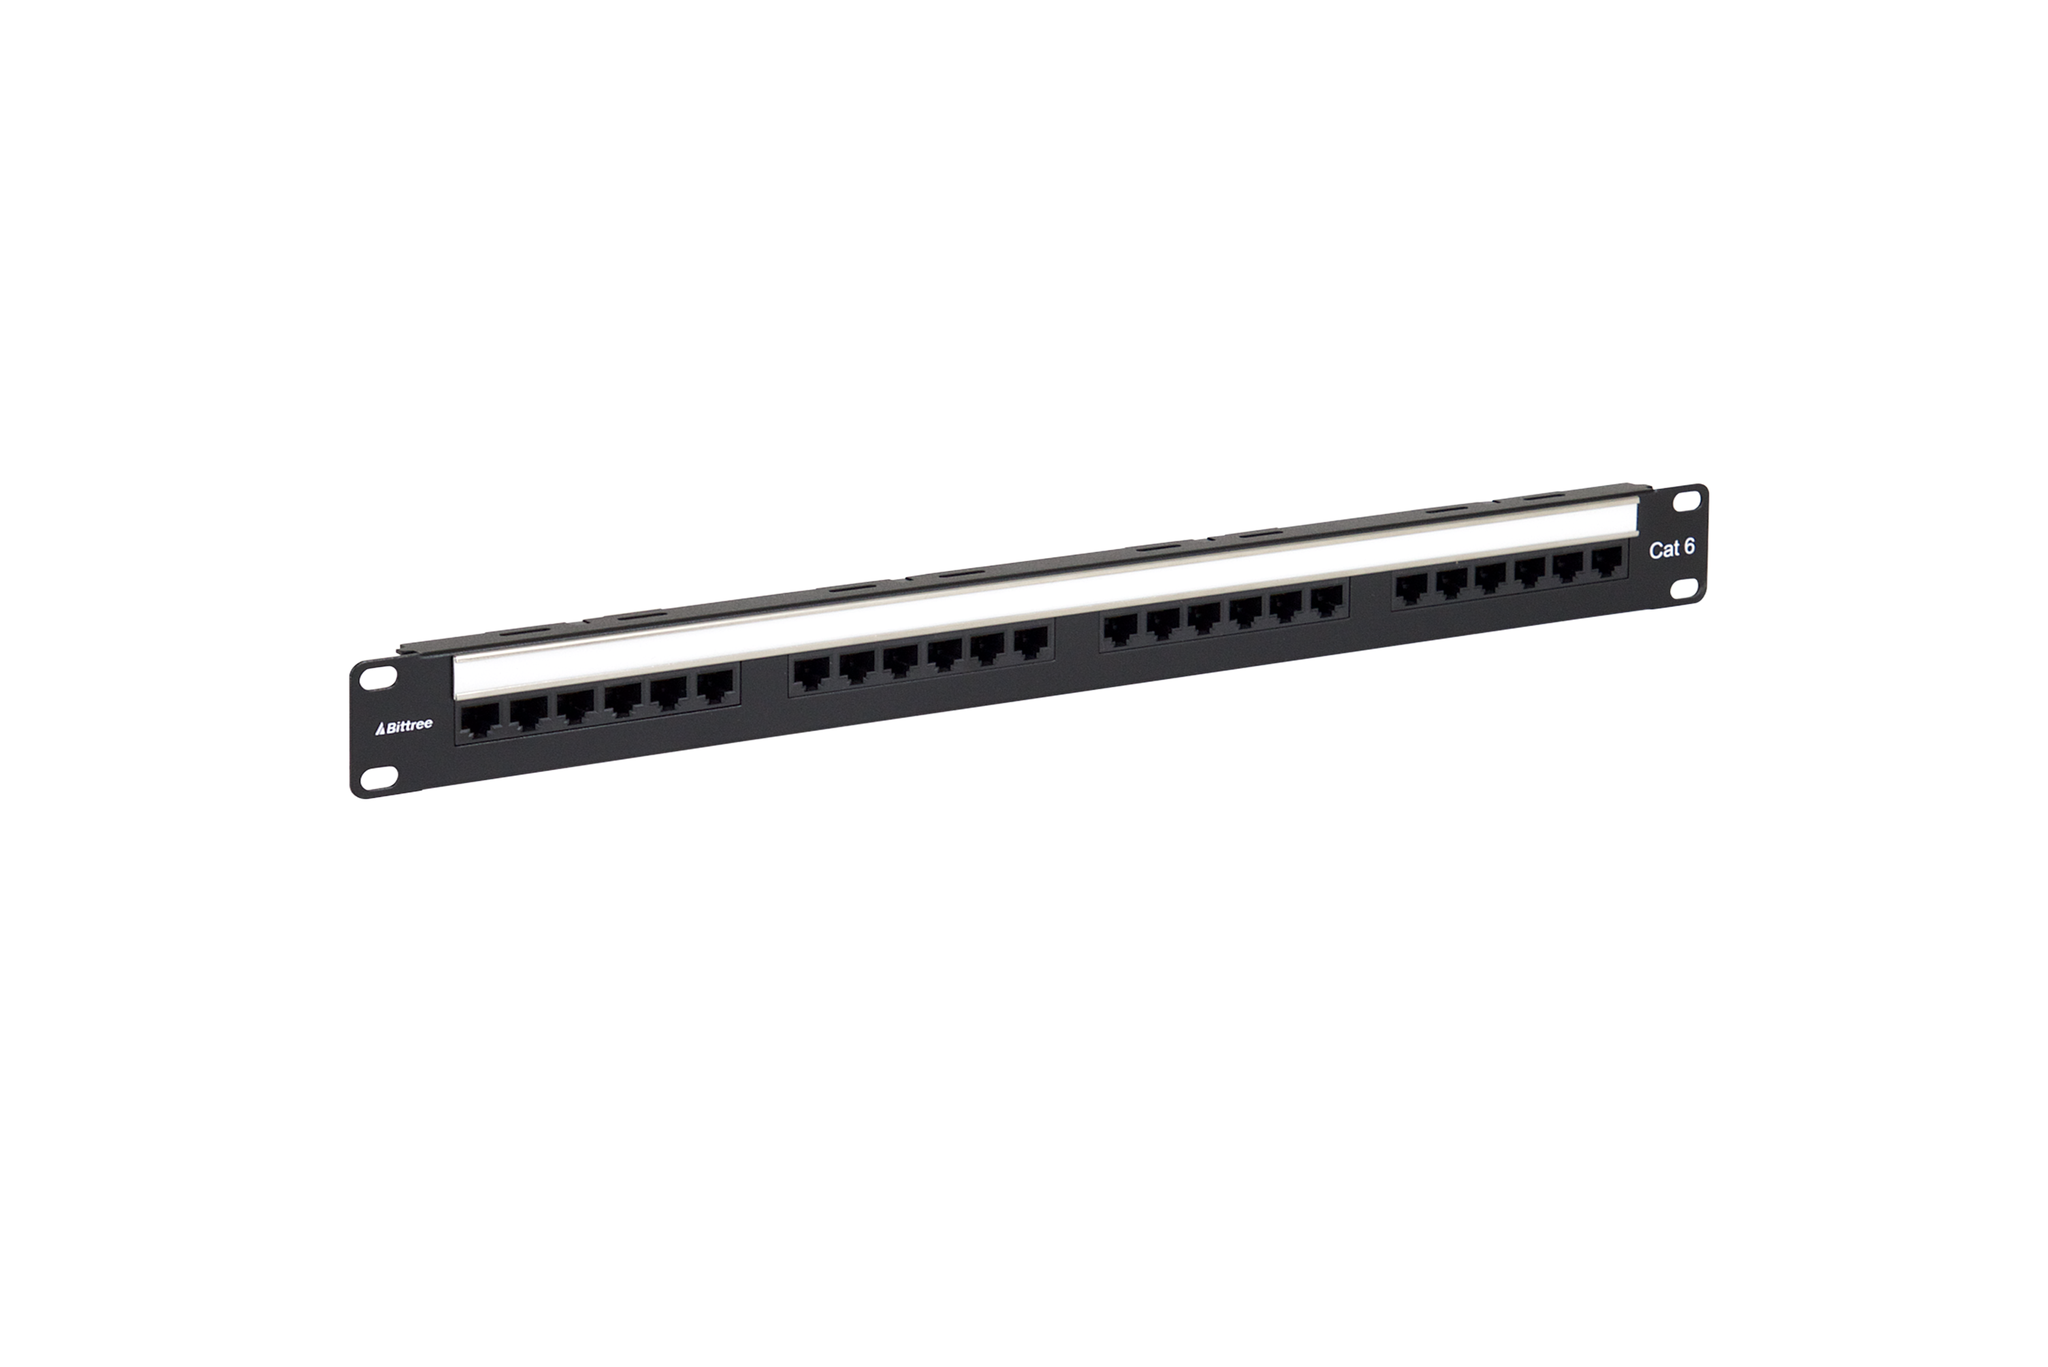 Flush-Mount Gigabit Ethernet Panel, CAT 6, 110 Punchdown